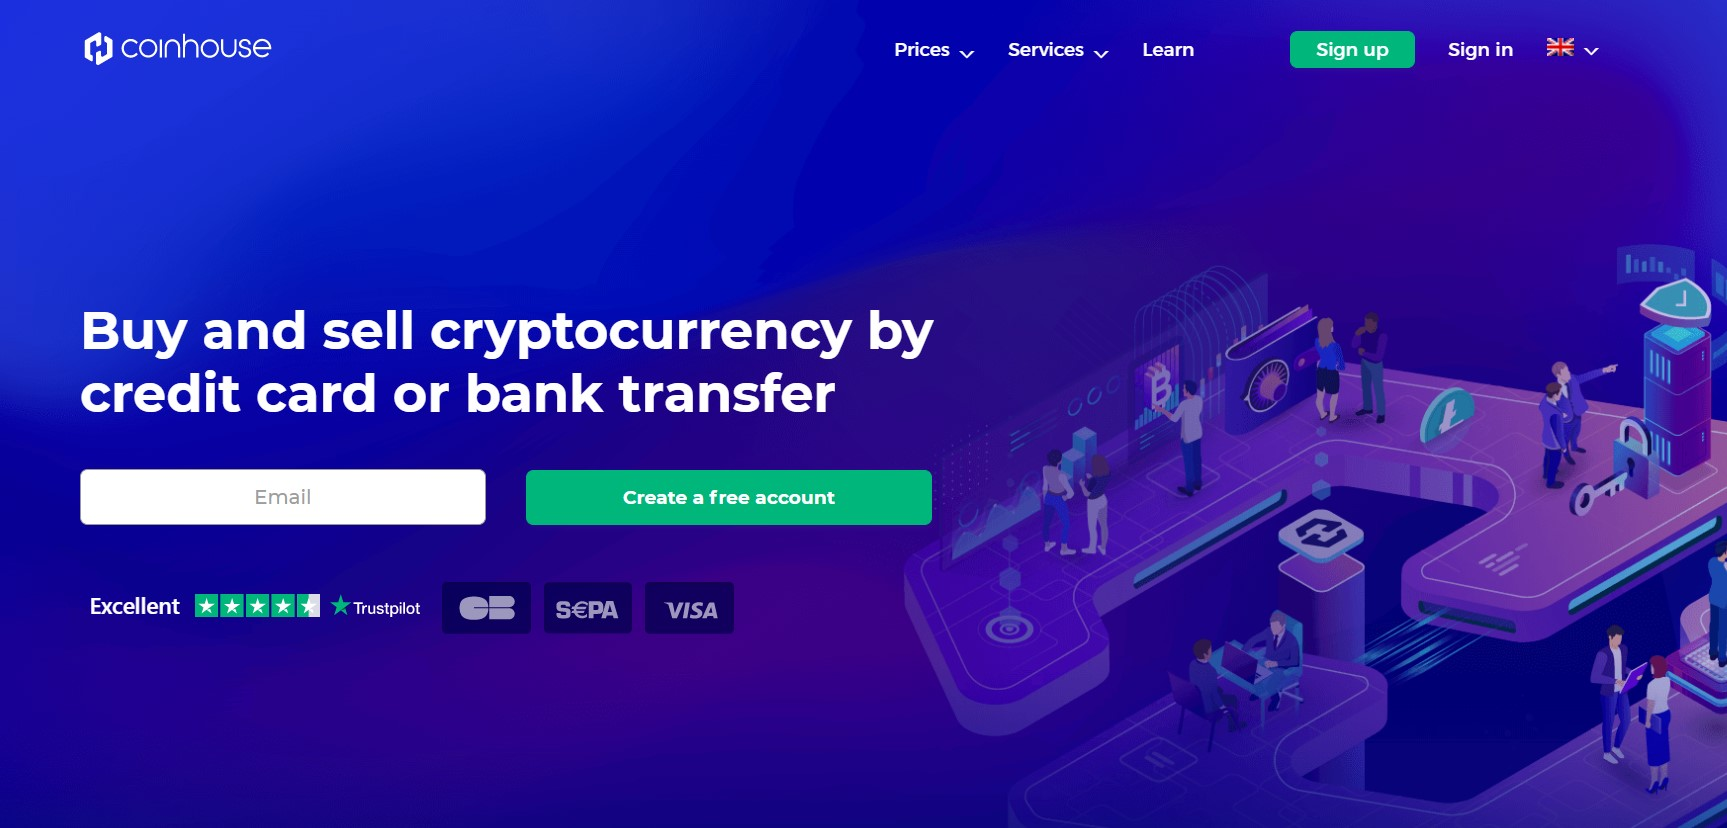 cheapest trading platform to buy cryptocurrency with credit card